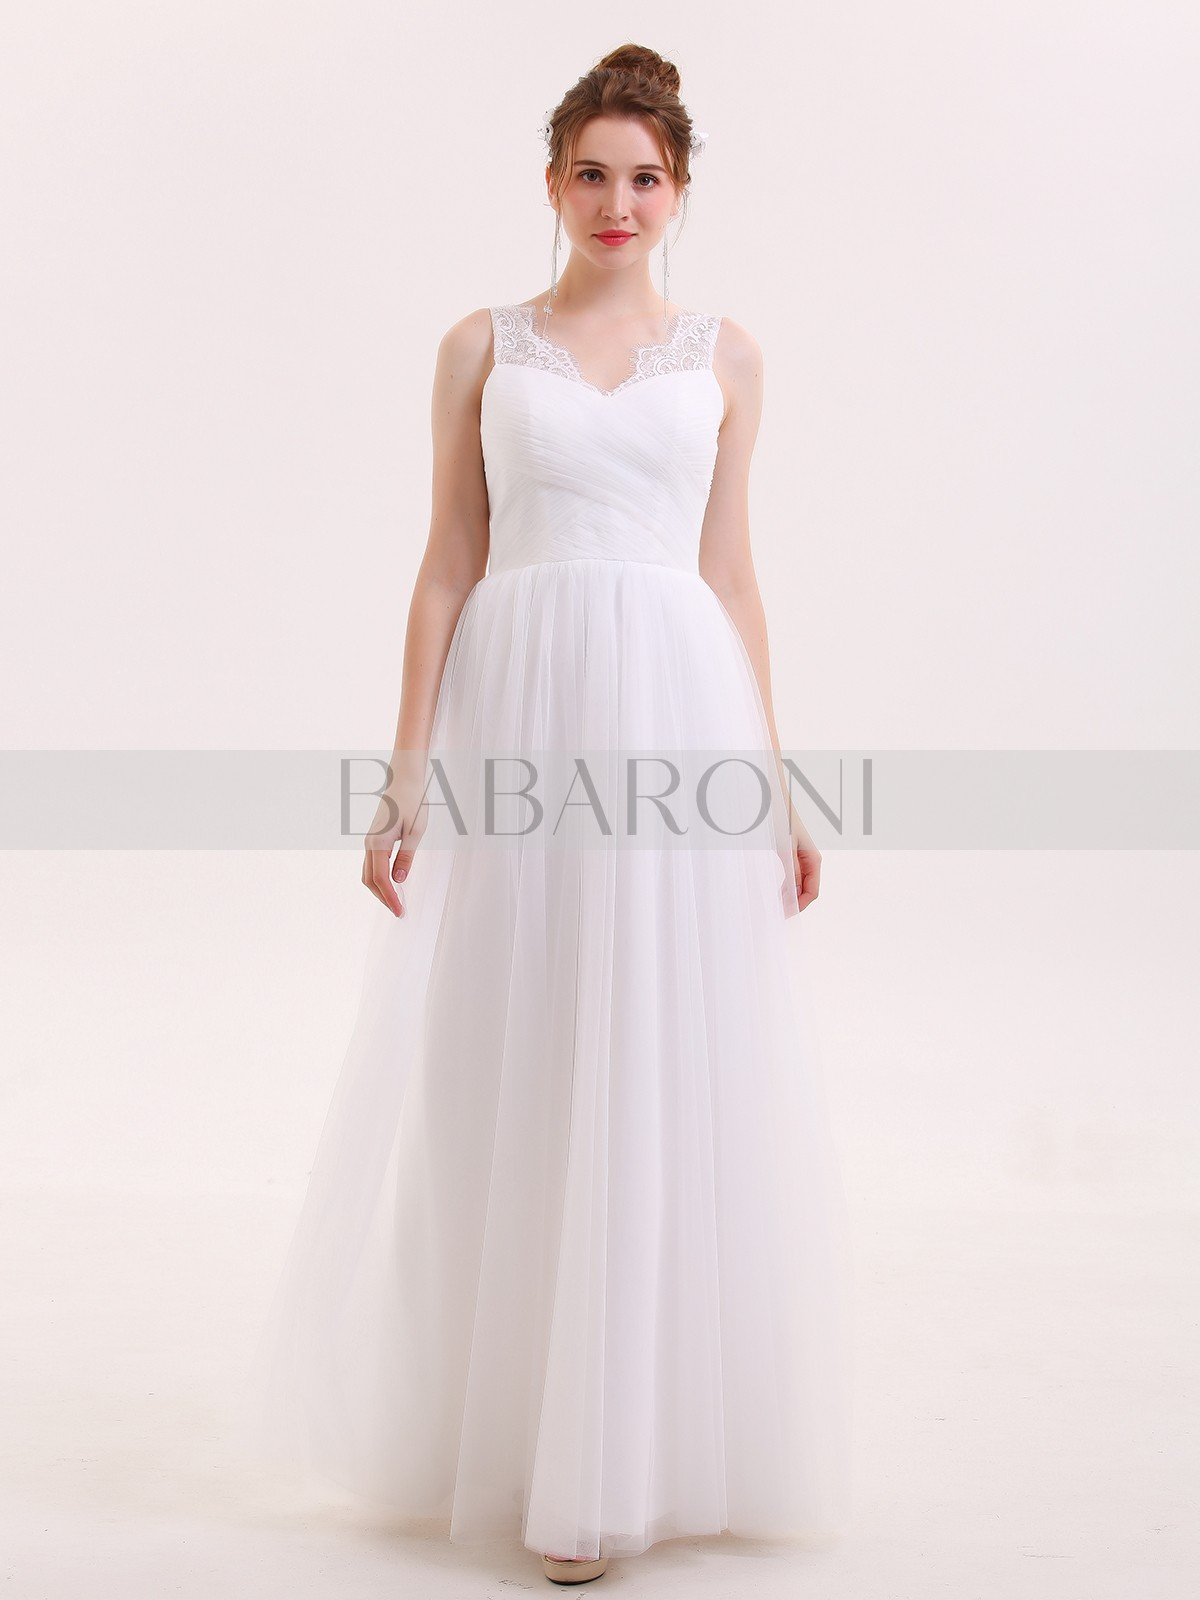 Sharon Tulle Full Length Dress With Lace Strap Babaroni